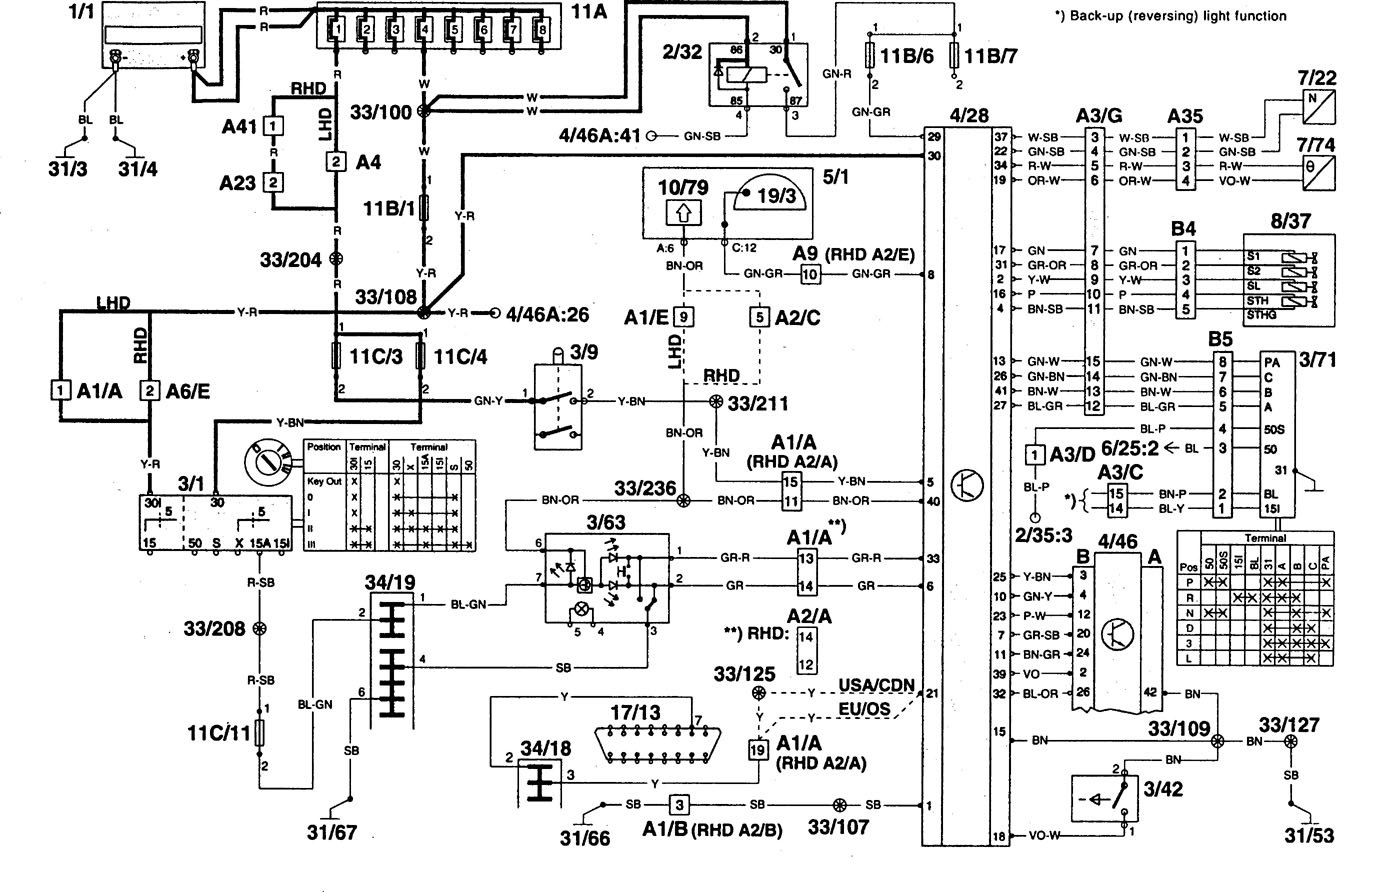 volvo 960 (1995) – wiring diagrams – transmission controls